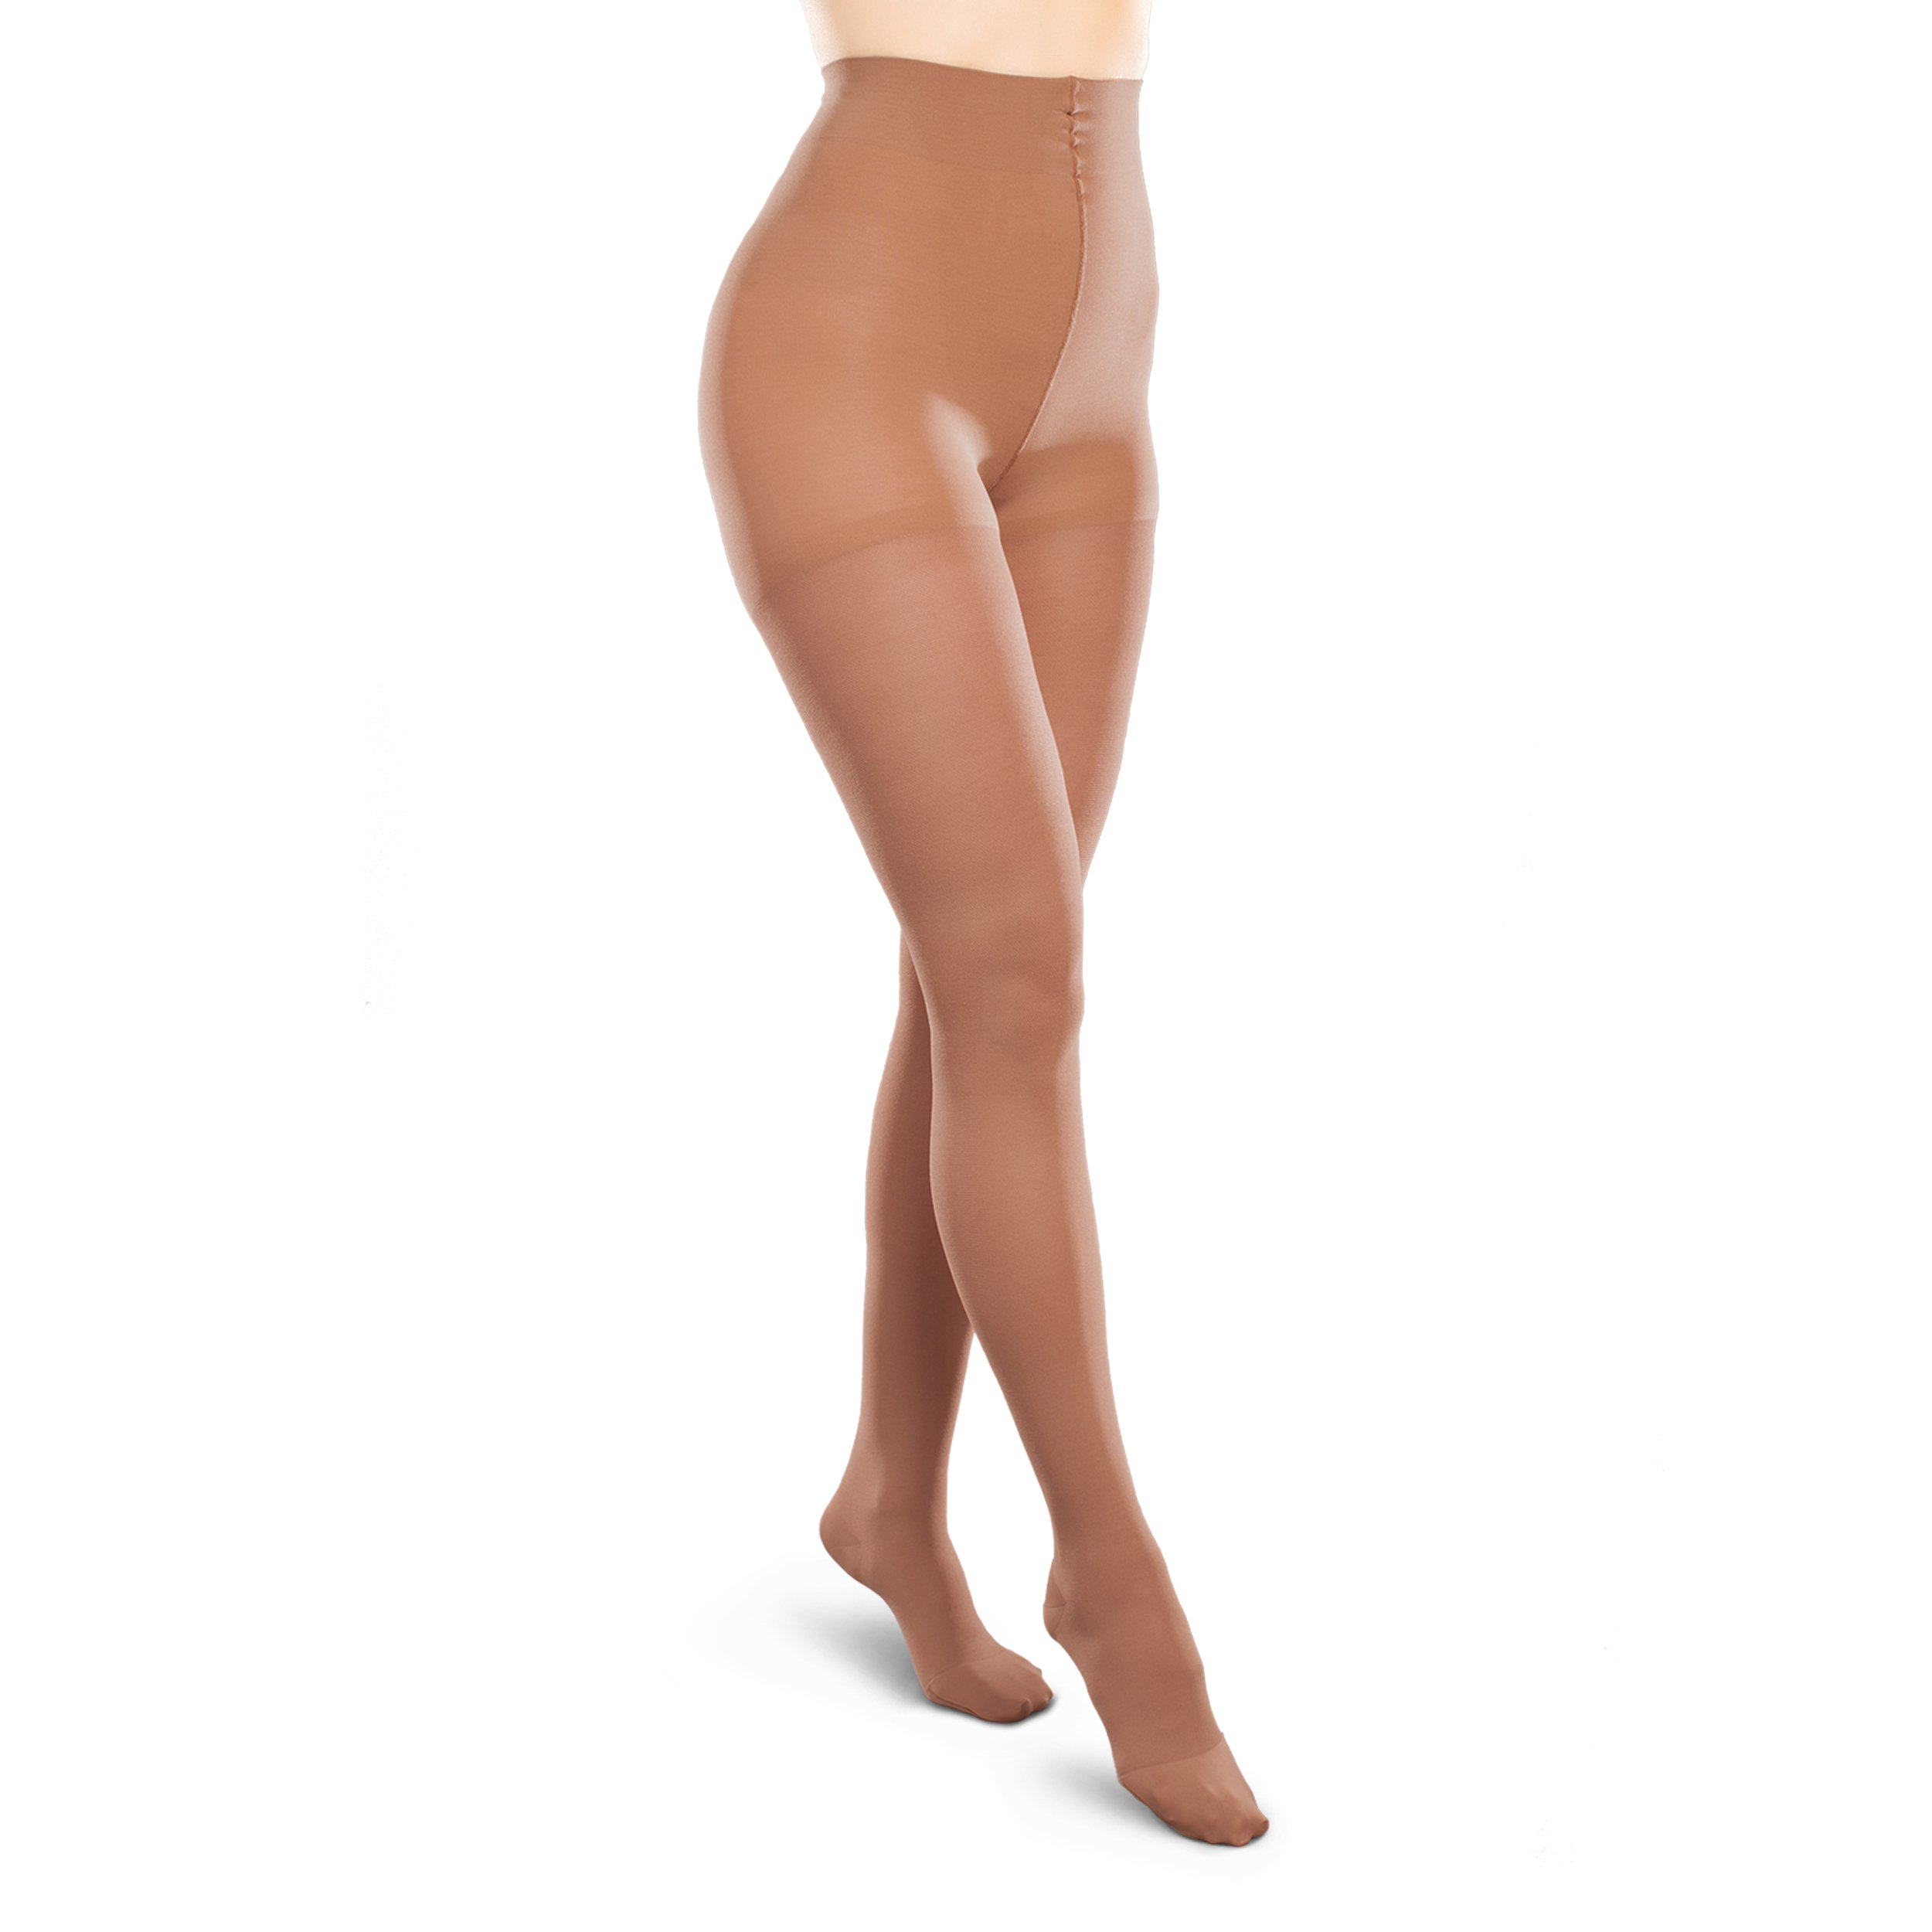 Therafirm Opaque Women's Support Pantyhose - Moderate (20-30mmHg) Graduated Compression Hosiery (Bronze, Medium Long) by Therafirm (Image #1)